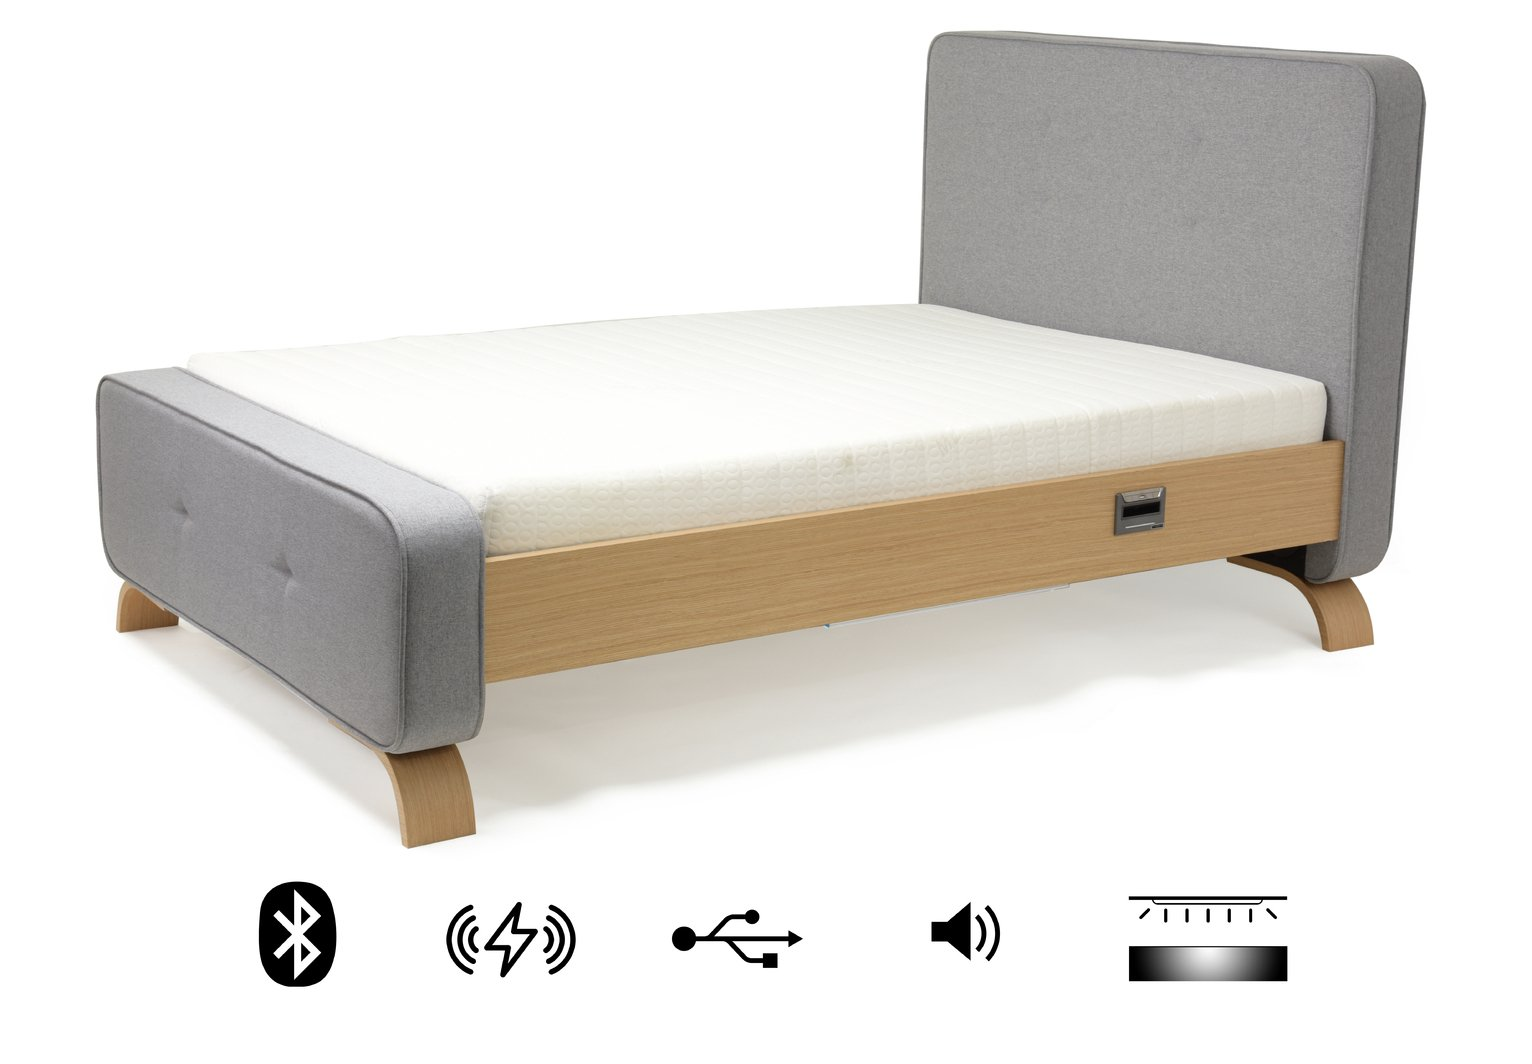 Koble Sove wireless charging Bluetooth Kingsize Bed Frame